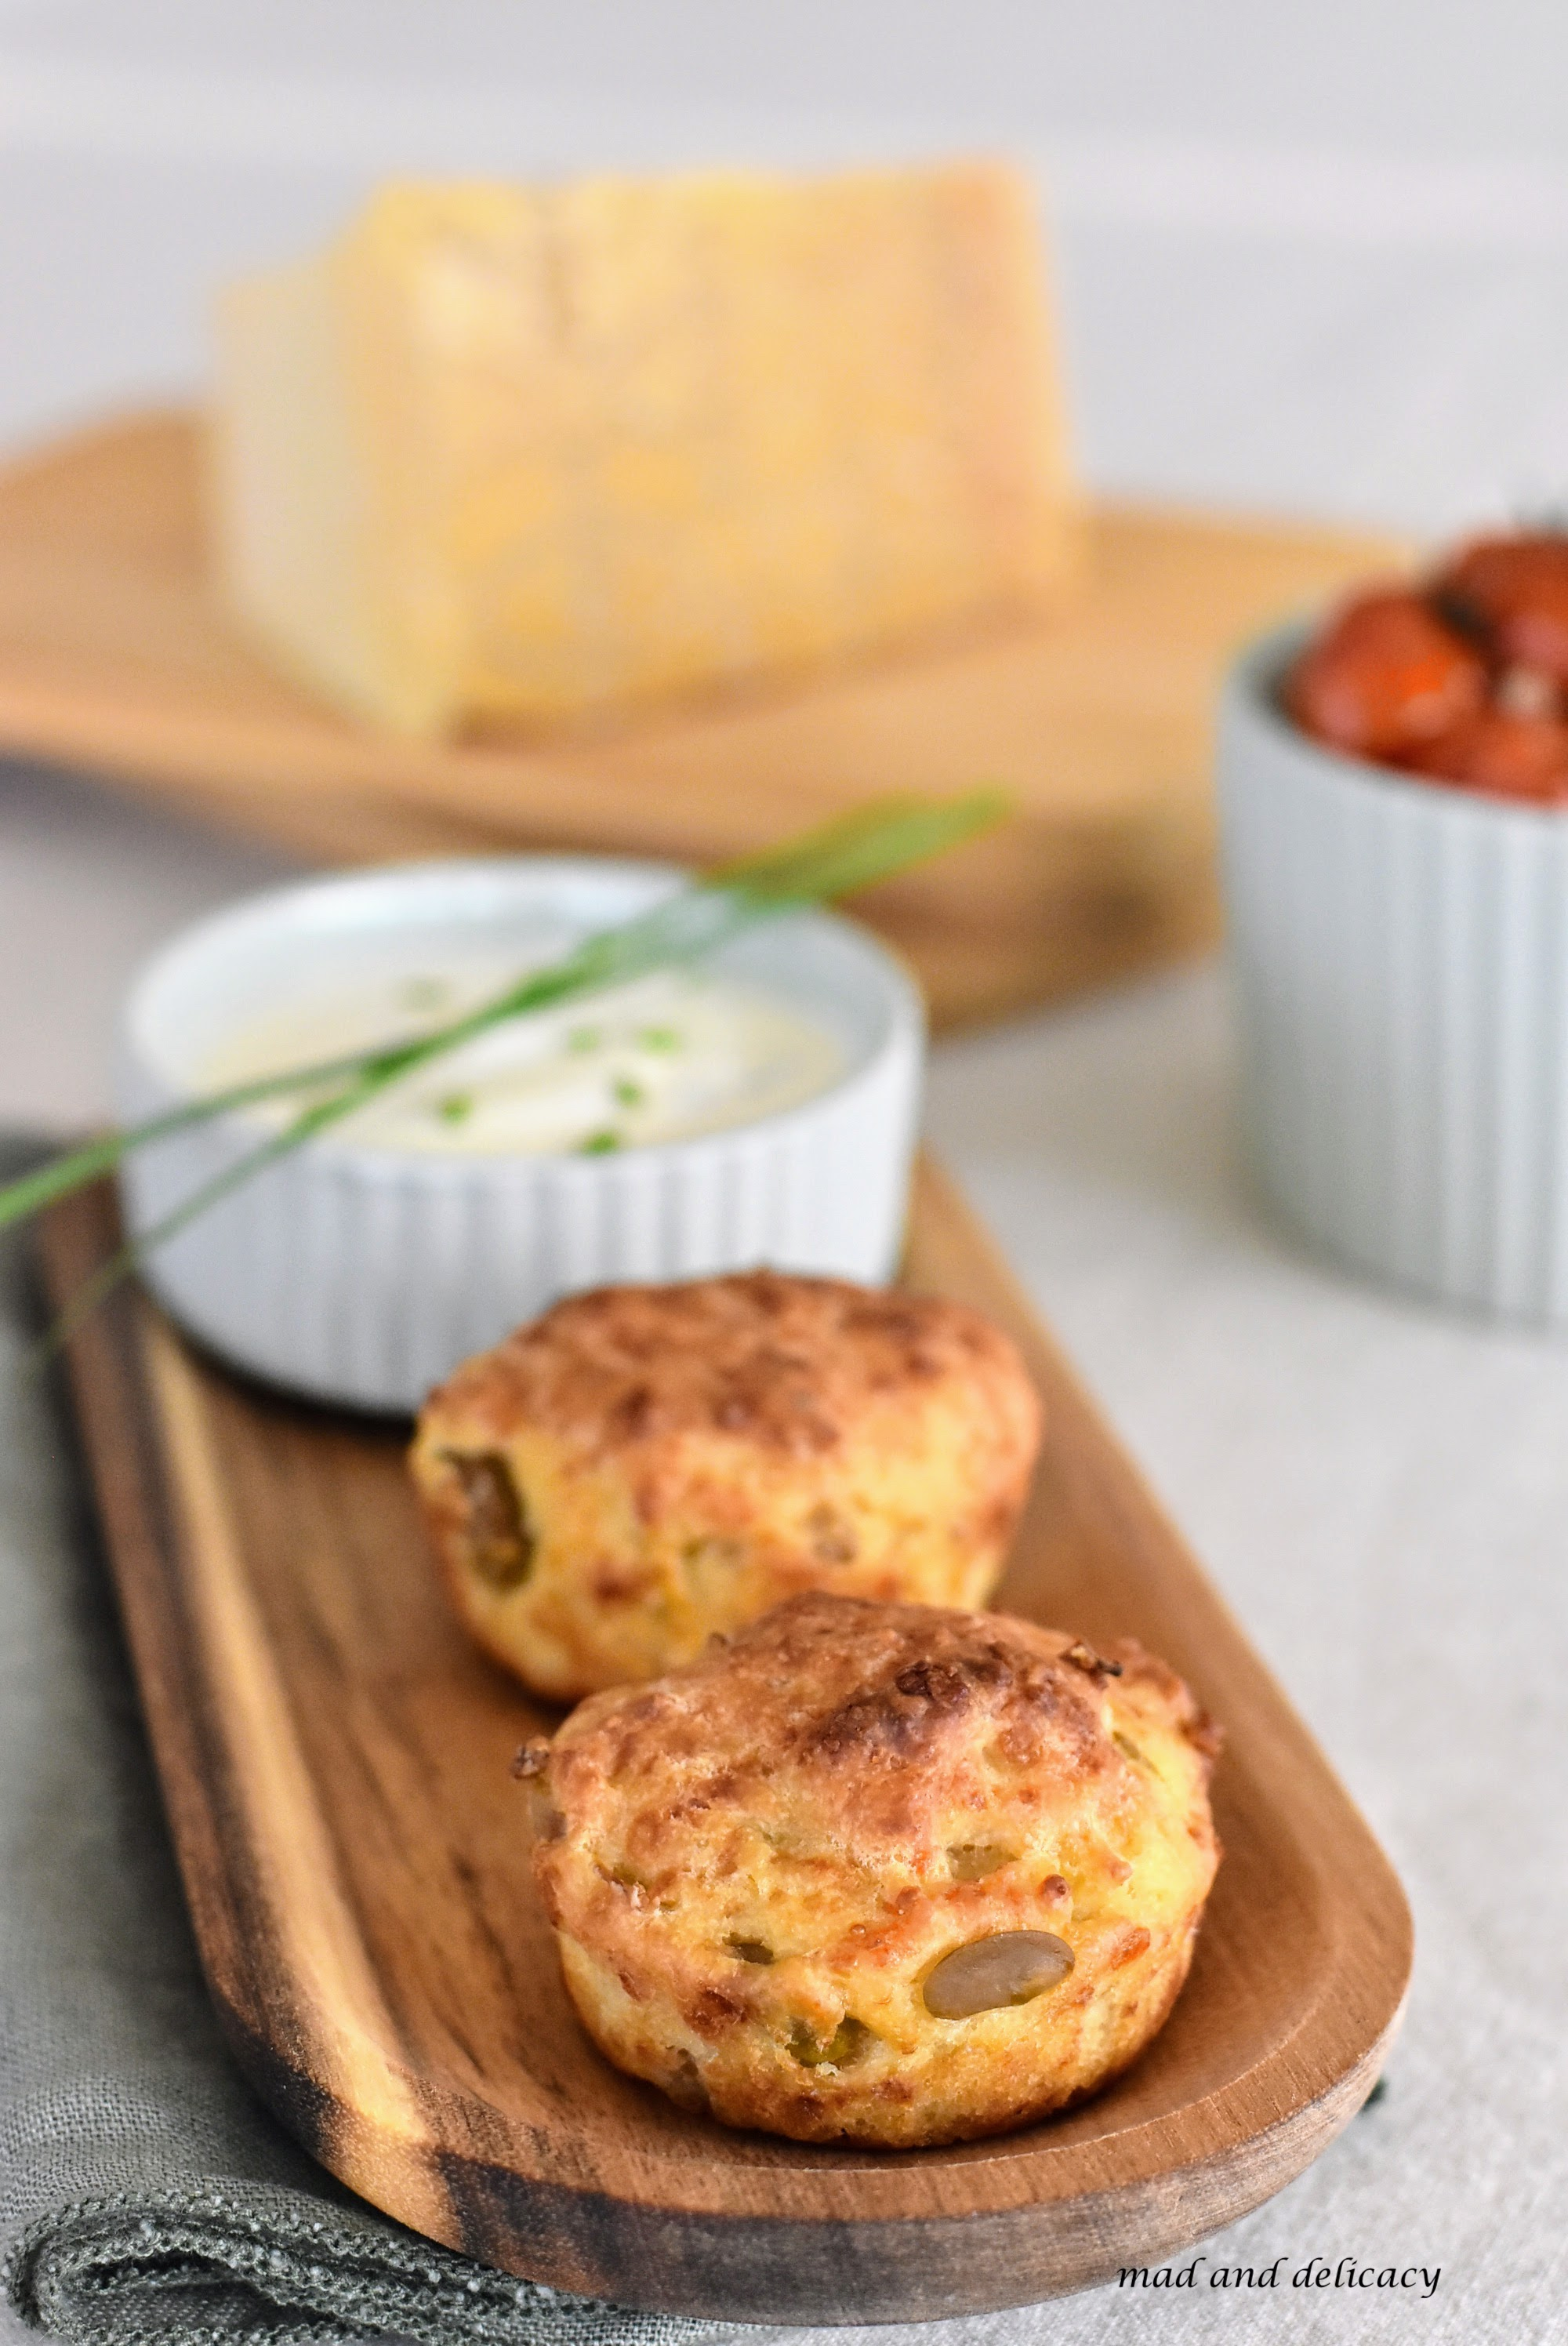 Mini Savoury Muffinswith Parmigiano Reggiano Cheese and Broad Beans